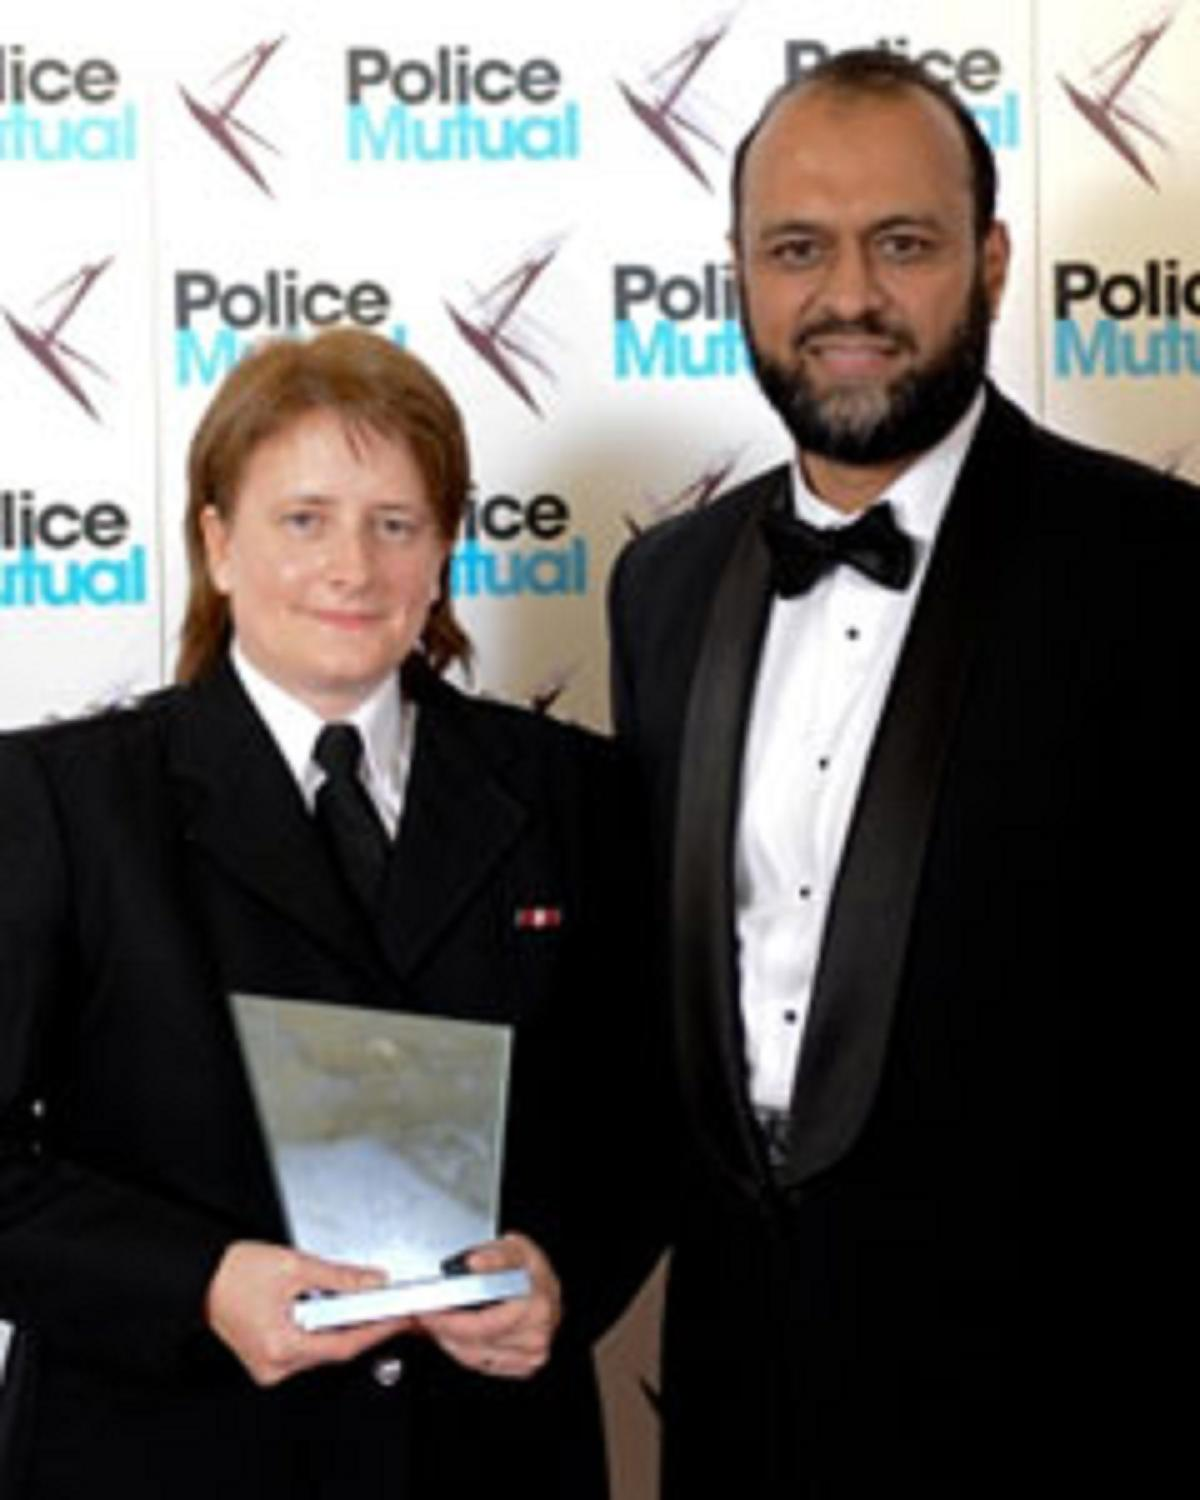 Denise Morrisey with Javed Khan, chief executive of Victim Support, in 2010